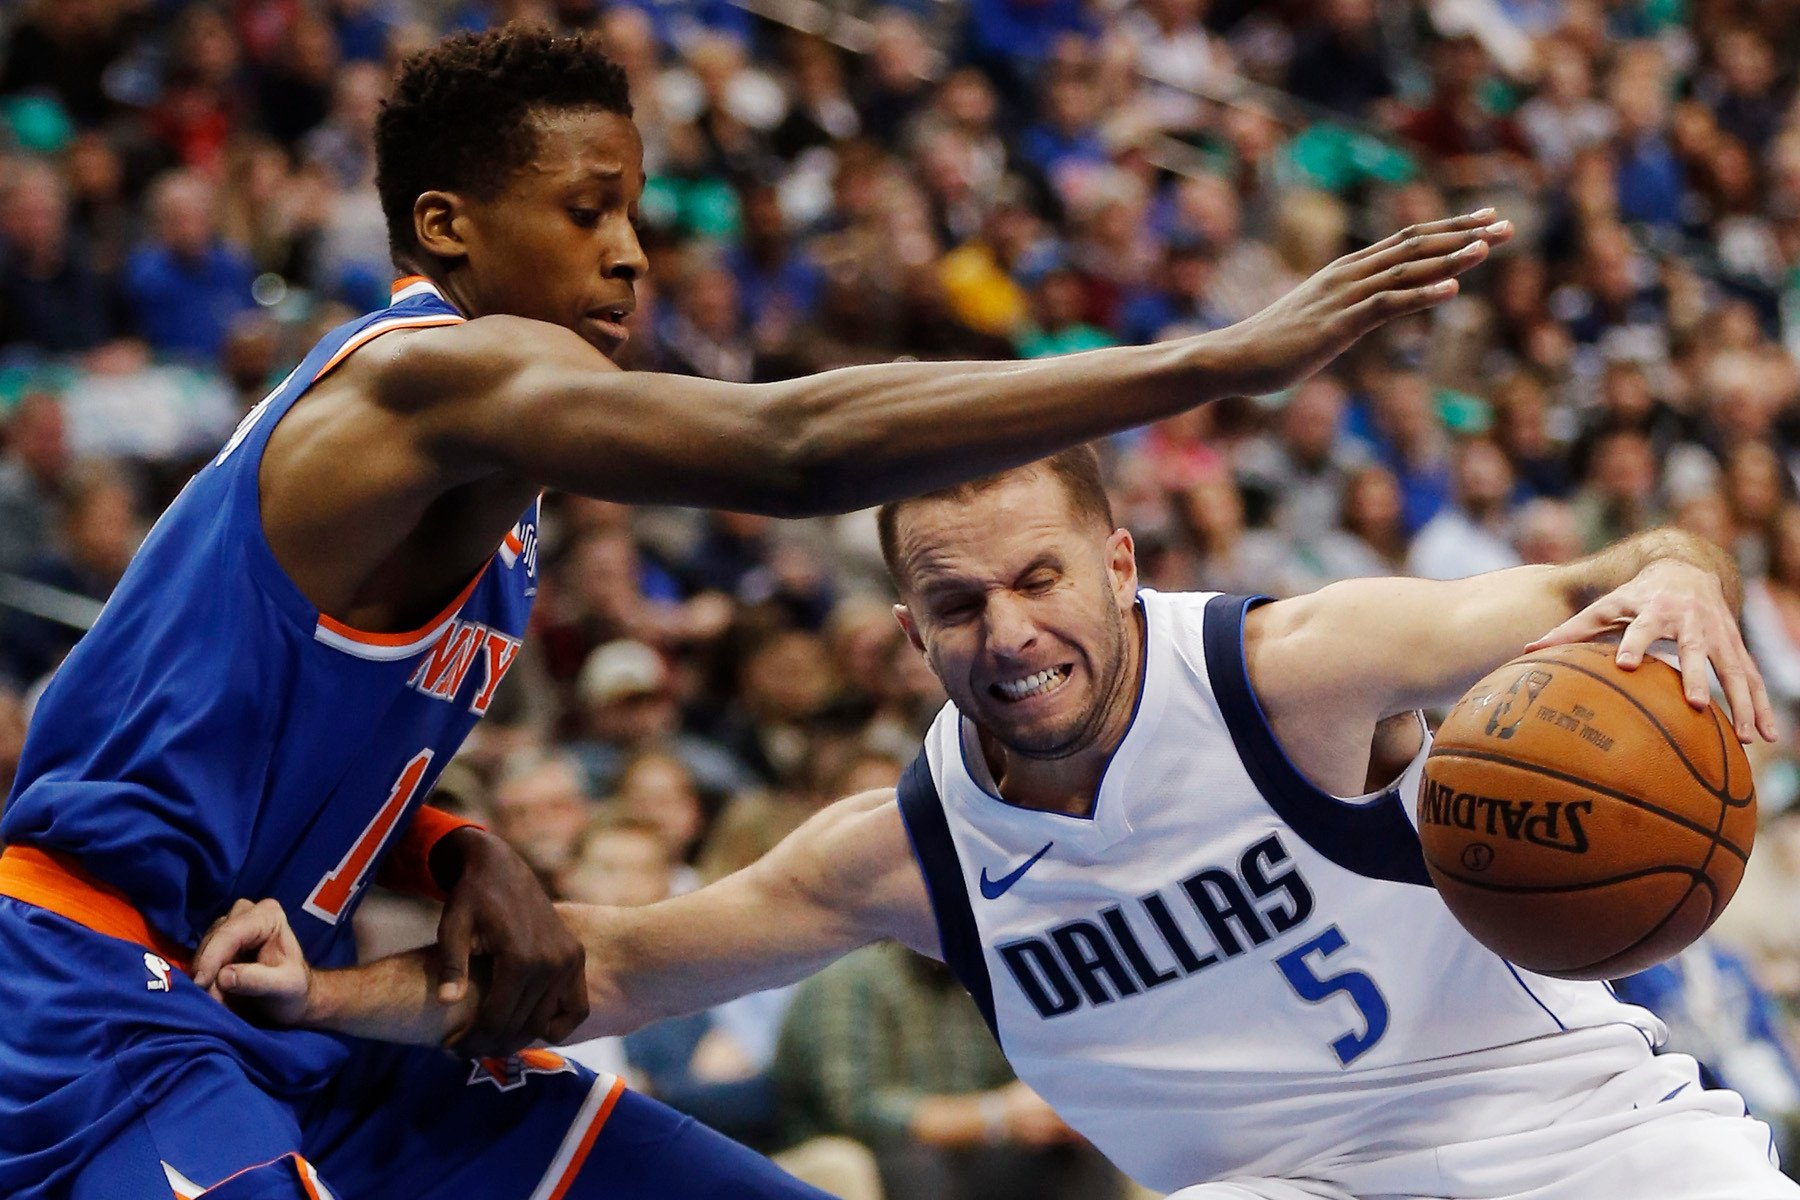 Frank Ntilikina gets last laugh in battle with top Mavericks rookie